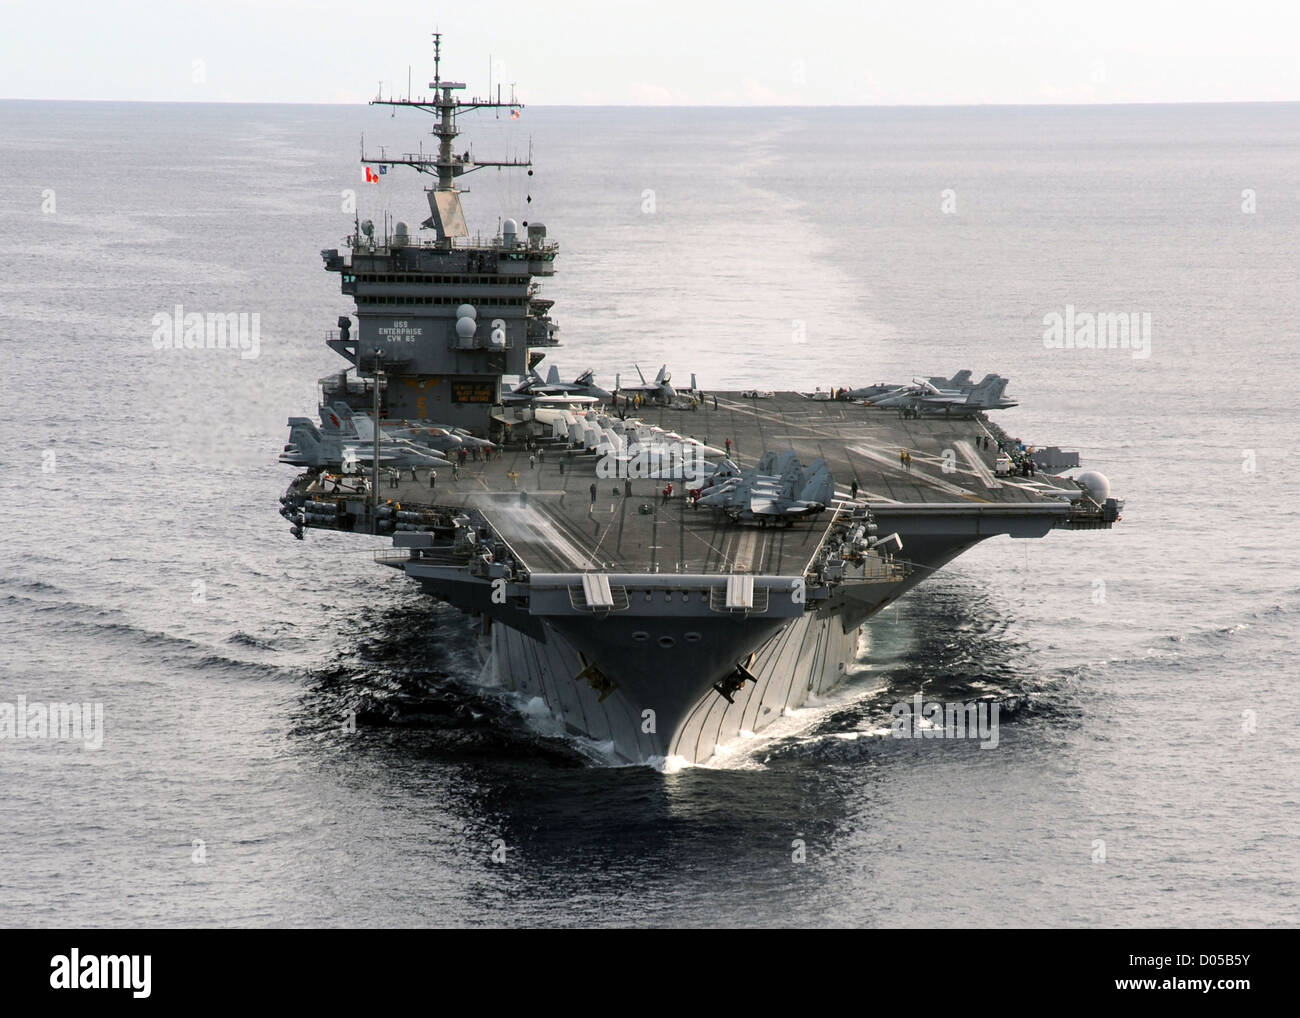 The aircraft carrier USS Enterprise is underway in the Atlantic Ocean January 25, 2012 during a composite training - Stock Image